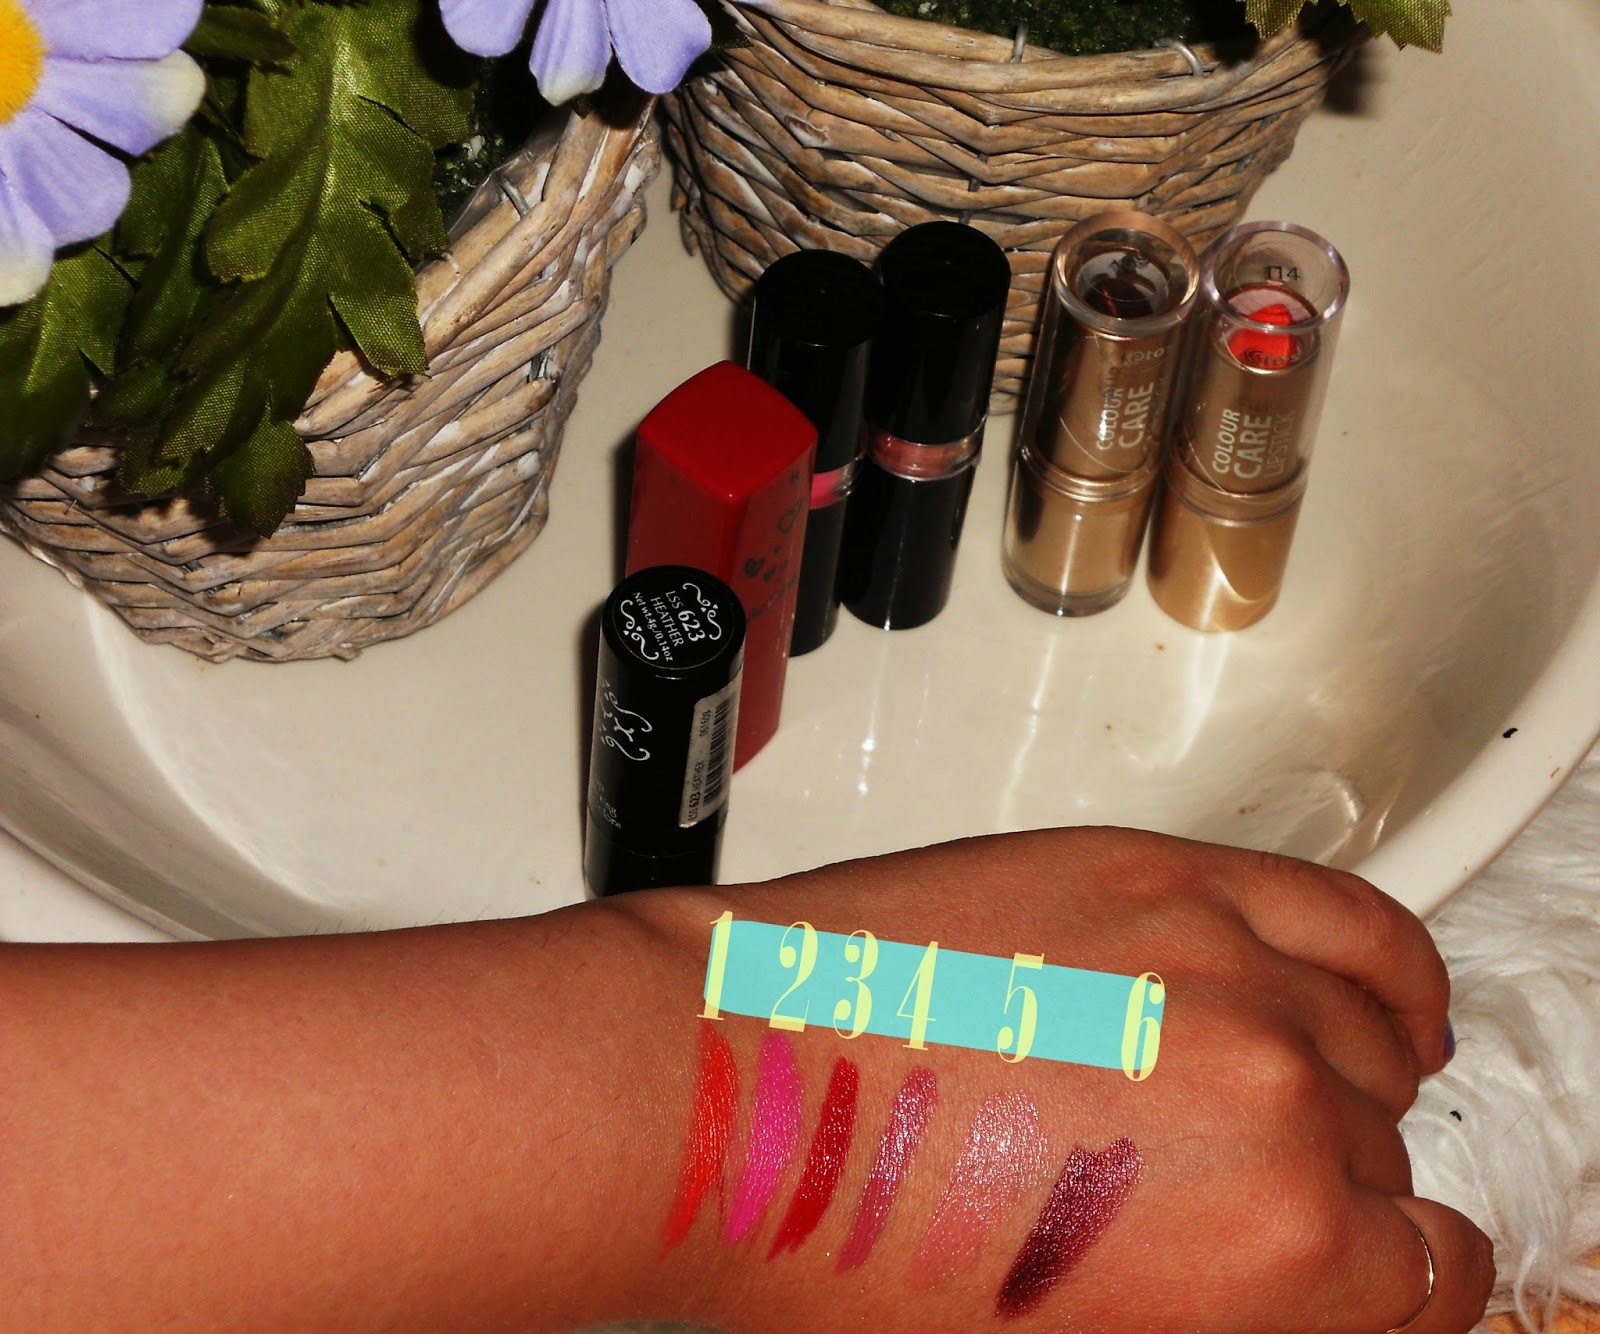 Favorite Summer Lipsticks Orange Pink Red Plum Nude NYX Etos MissSporty Lanvin